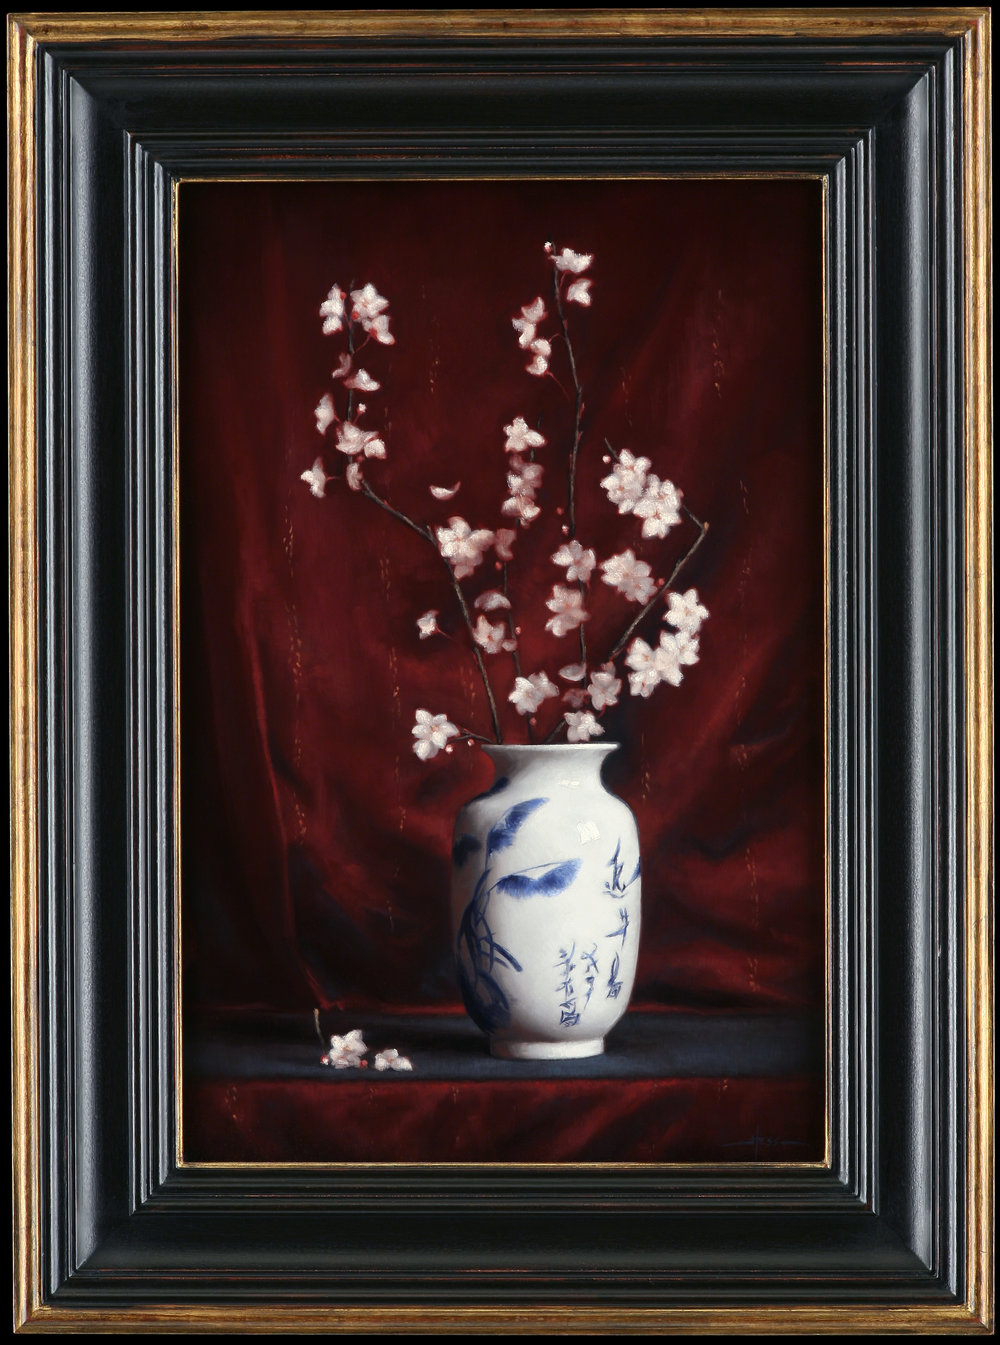 Chinese Vase with Almond Blossoms (2).jpg